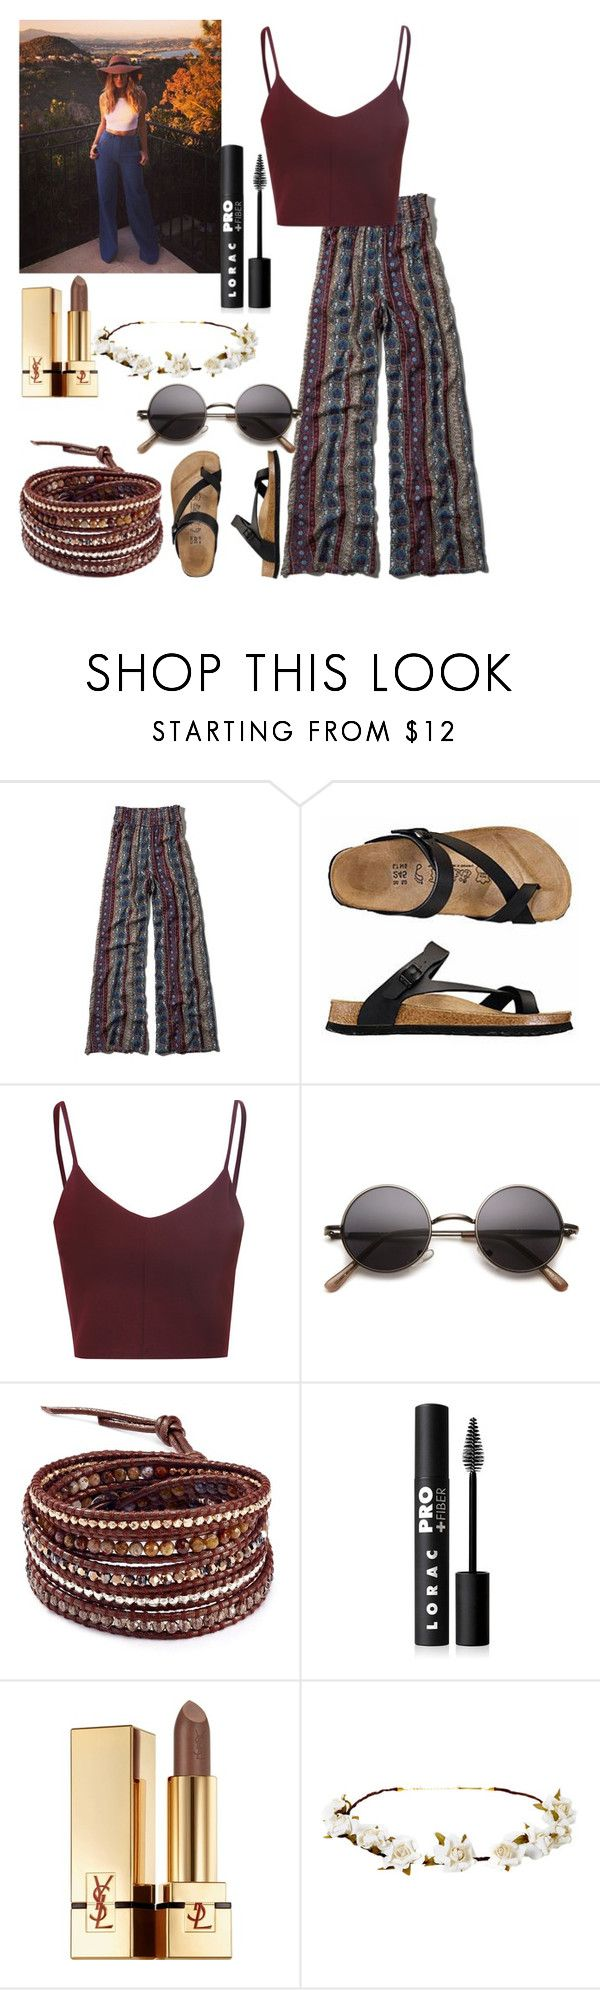 """""""Vacation with Perrie"""" by kennedey-lynn-freeman ❤ liked on Polyvore featuring Abercrombie & Fitch, Glamorous, Chan Luu, LORAC, Yves Saint Laurent and Cult Gaia"""